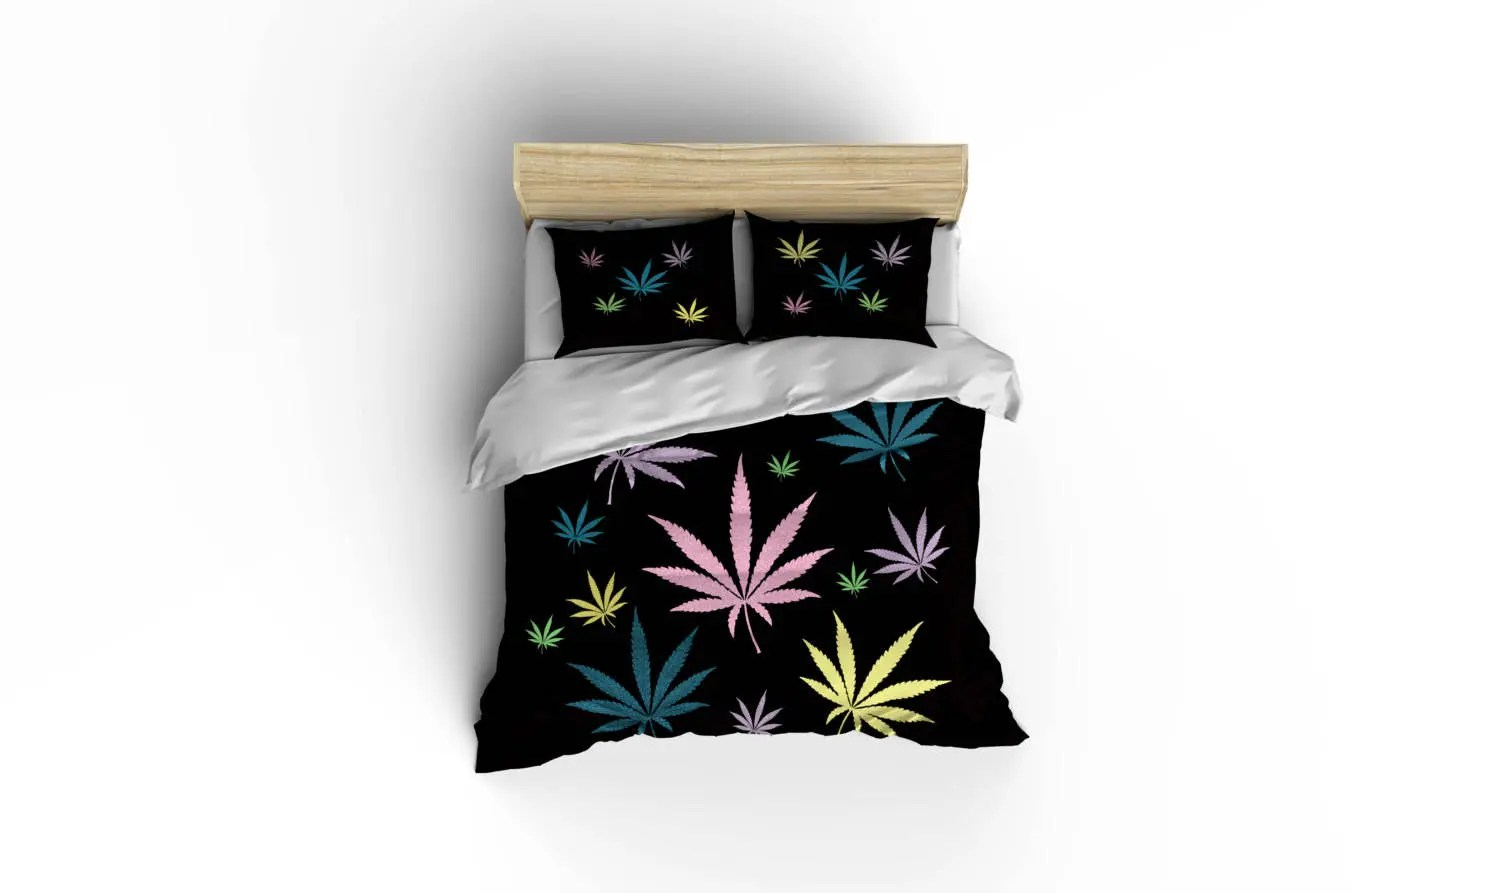 Weed Bettwäsche Cannabis Duvet Covers Marijuana Duvet Cover Bed And Bath Cannabis Bedding Legalize It Bedding 420 Friendly Weed Duvet Ganja Bedding